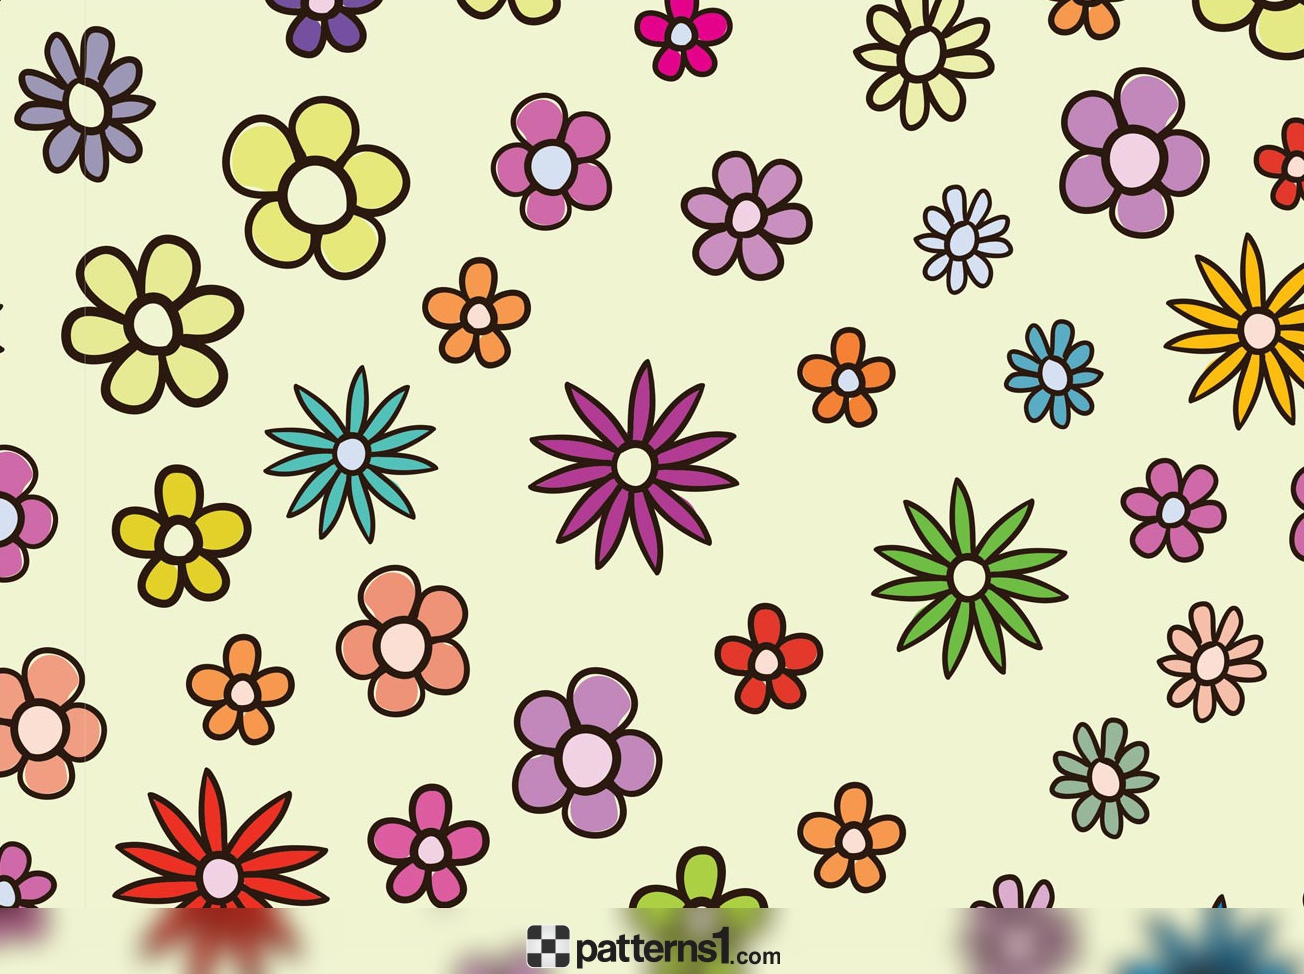 Background clipart design clip royalty free stock Free Background Floral Cliparts, Download Free Clip Art, Free Clip ... clip royalty free stock